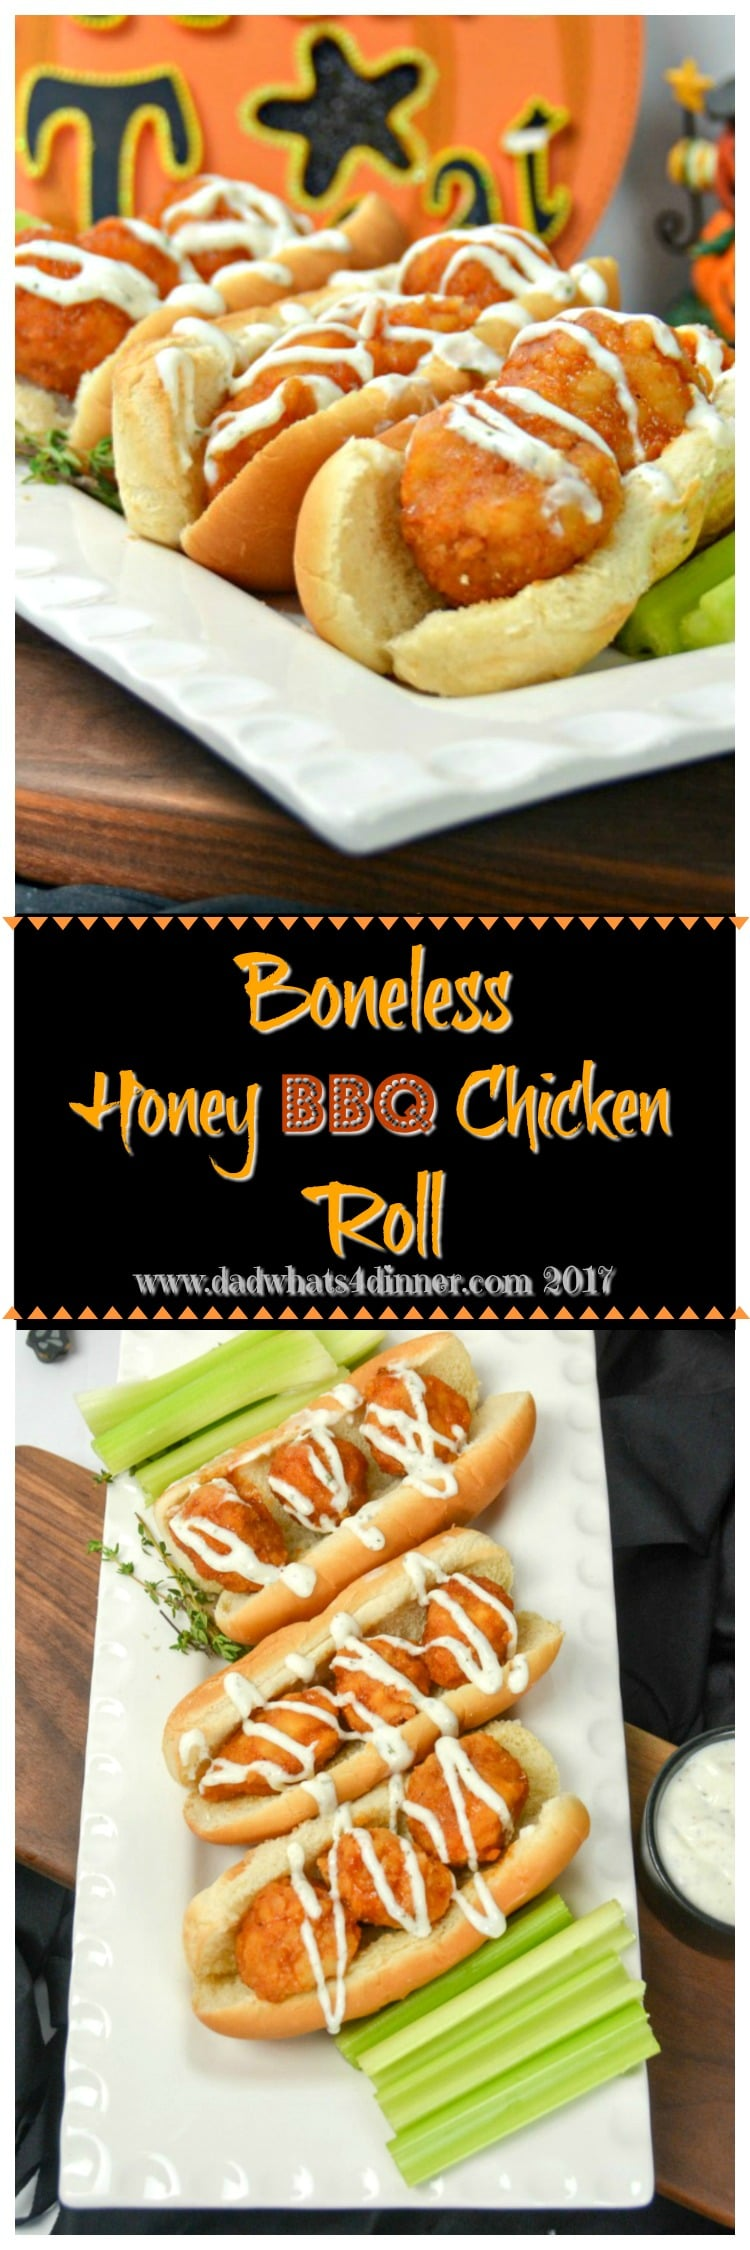 Try this Boneless Honey BBQ Chicken Roll with Creamy Ranch Sauce for a quick and simple trick or treat night snack you can make with your kids. #boneless #chicken #wings #kid-friendly #buffalo #sliders www.dadwhats4dinner.com